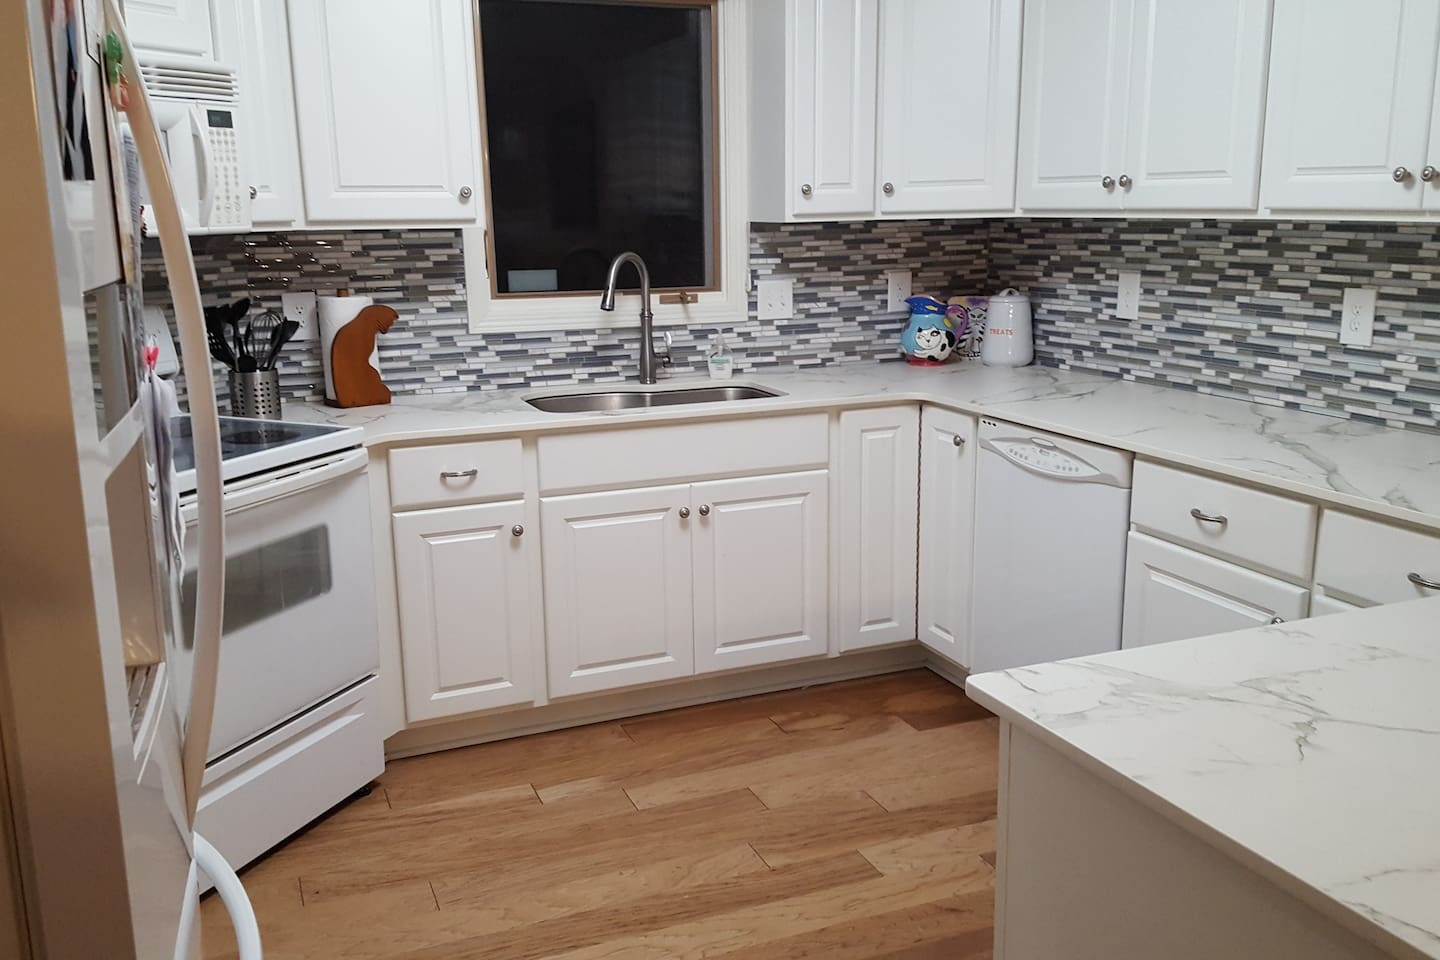 New range and dishwasher, freshly painted lower cabinets, 30 cf refridgerator. Seperate pantry, breakfast bar and large dining room table.